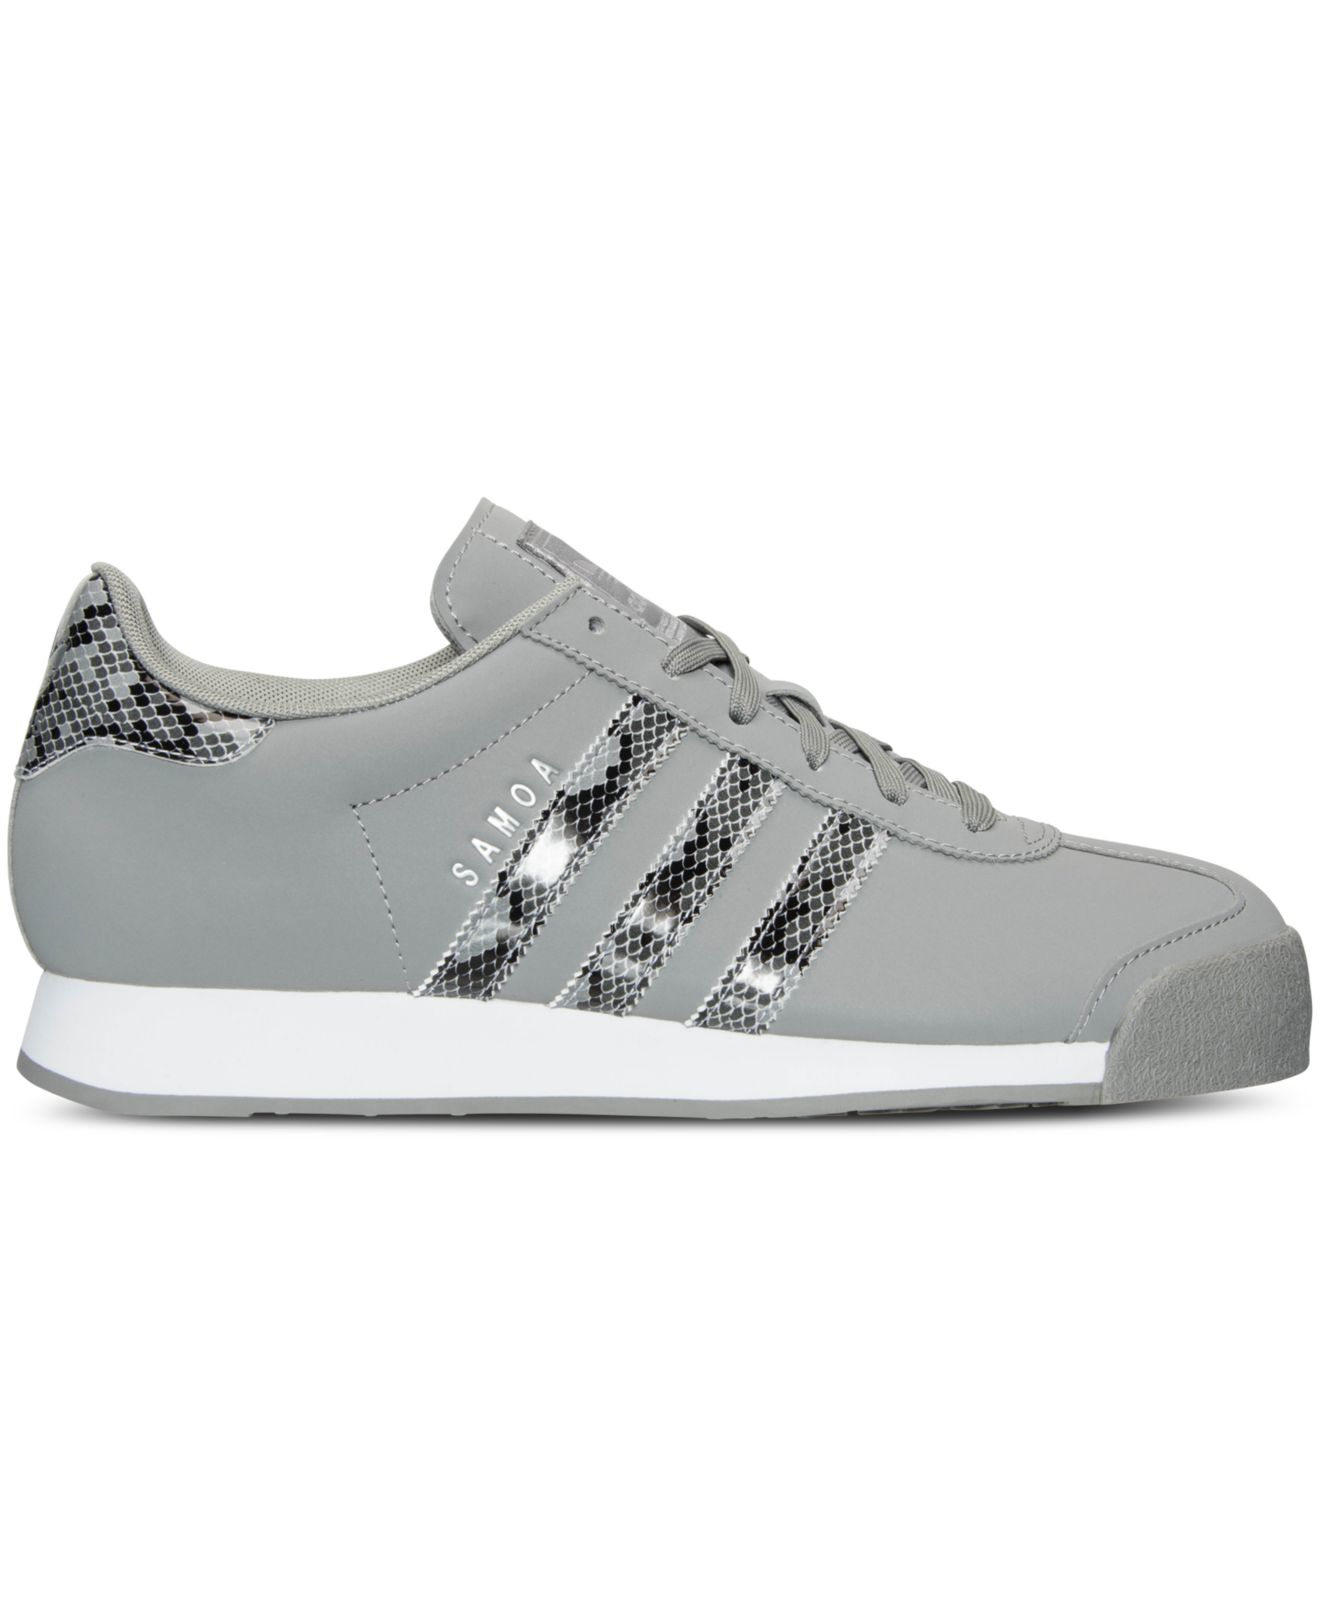 pretty nice 96d03 5a9fe adidas Originals Men s Samoa Reptile Casual Sneakers From Finish ...